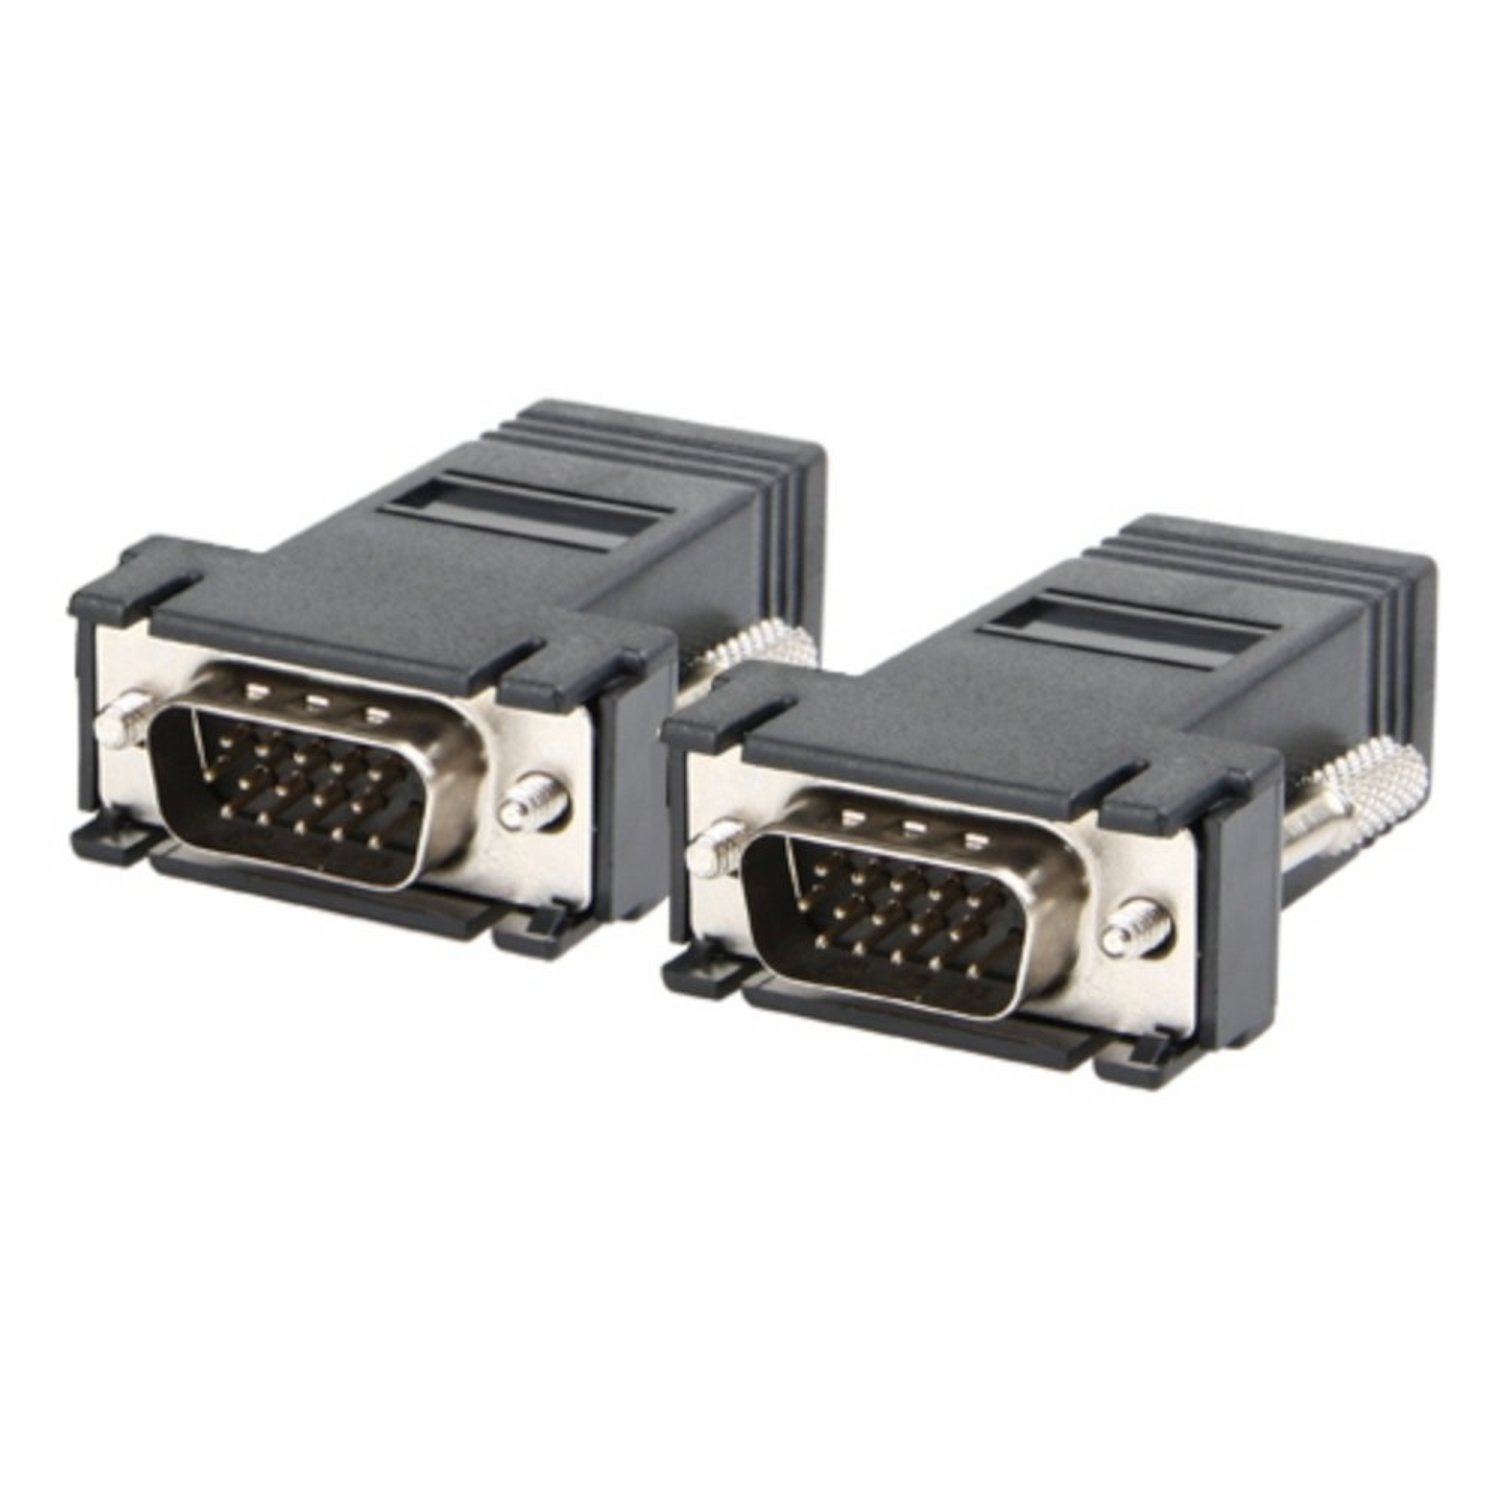 SMAKN Theo&Cleo 2 Black VGA Extender Adapter to Cat5/cat6/rj45 Cable (B00M9X8FAS) Amazon Price History, Amazon Price Tracker